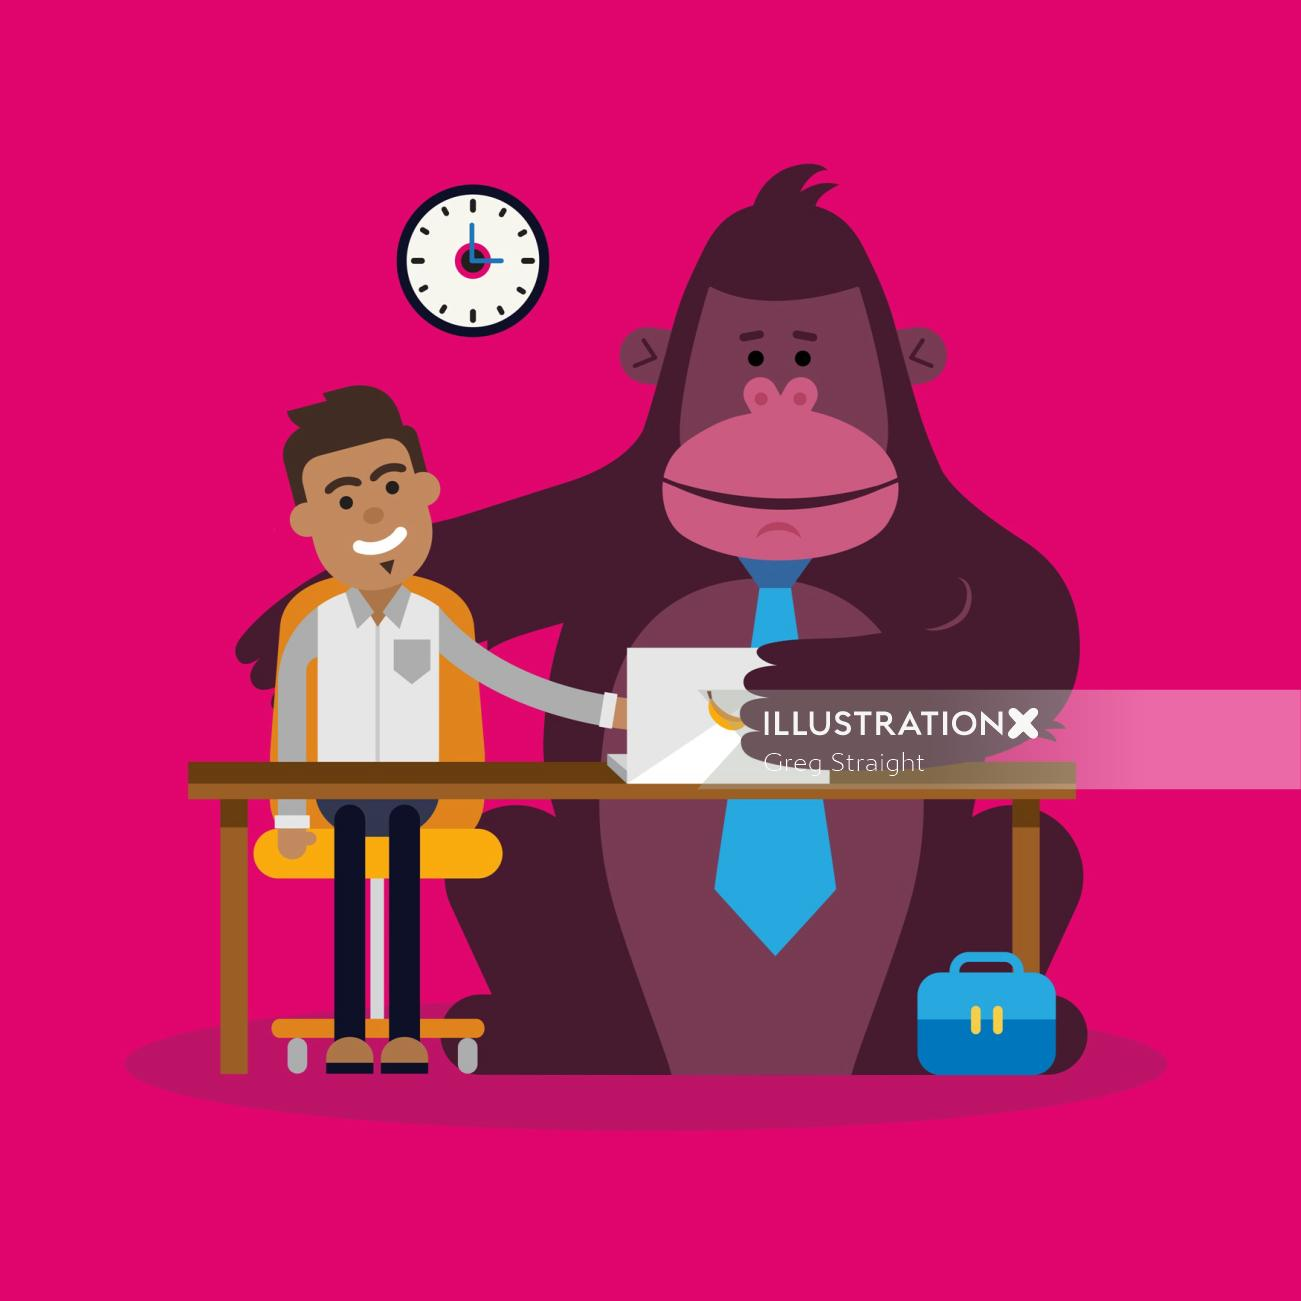 Man with Monkey graphic illustration